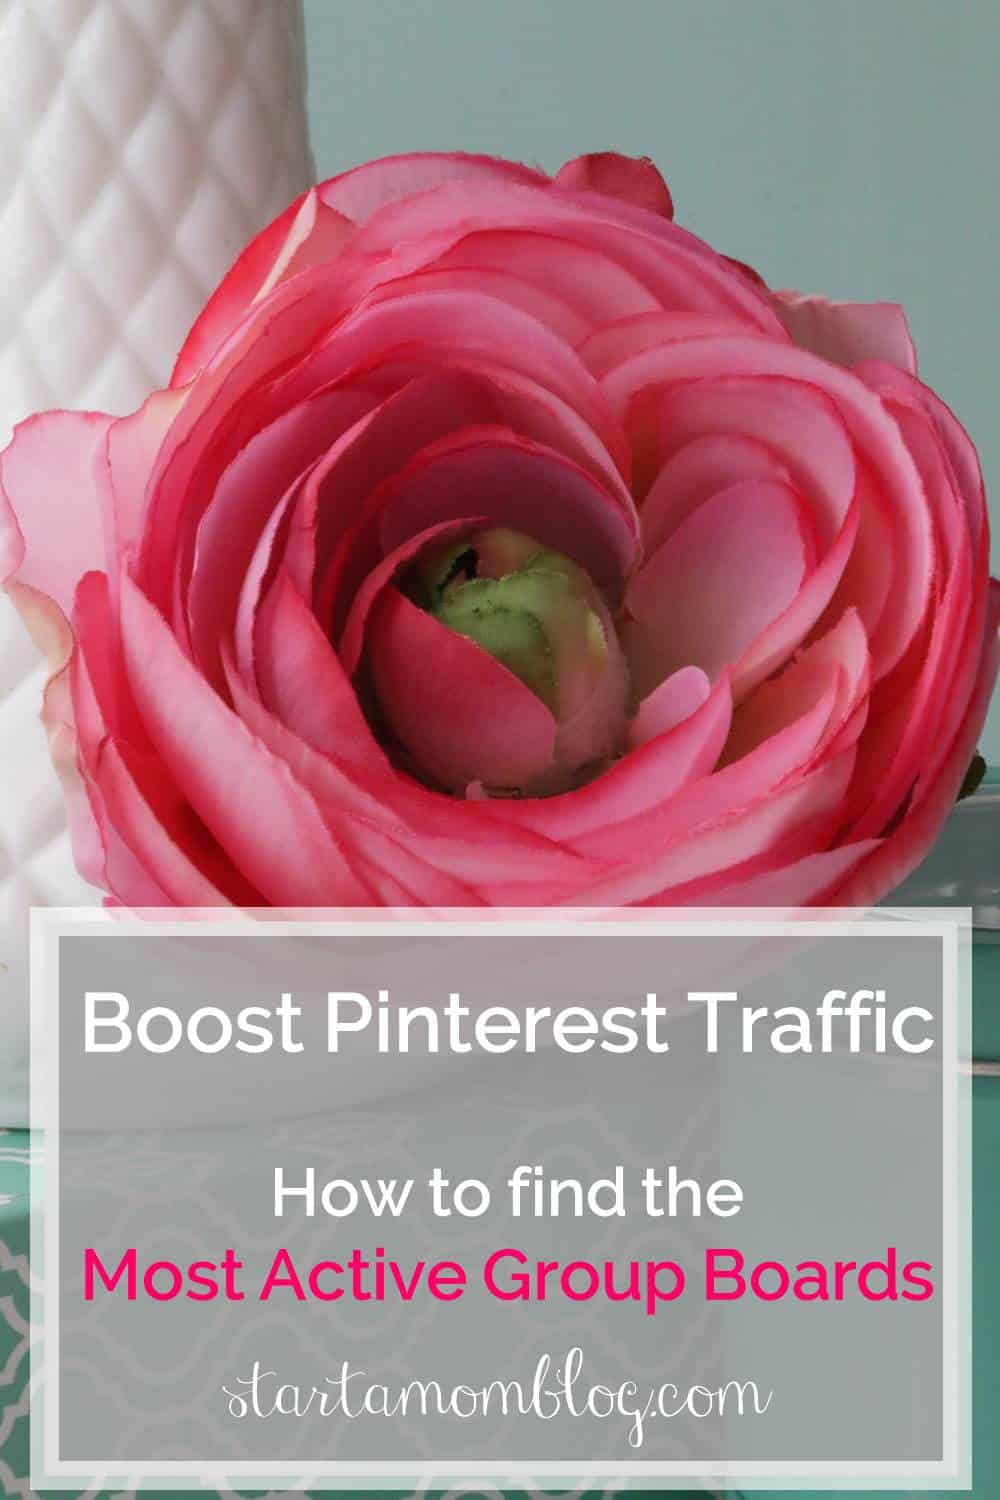 Boost Pinterest Traffic - How to find the most active group boards - step by step guide www.startamomblog